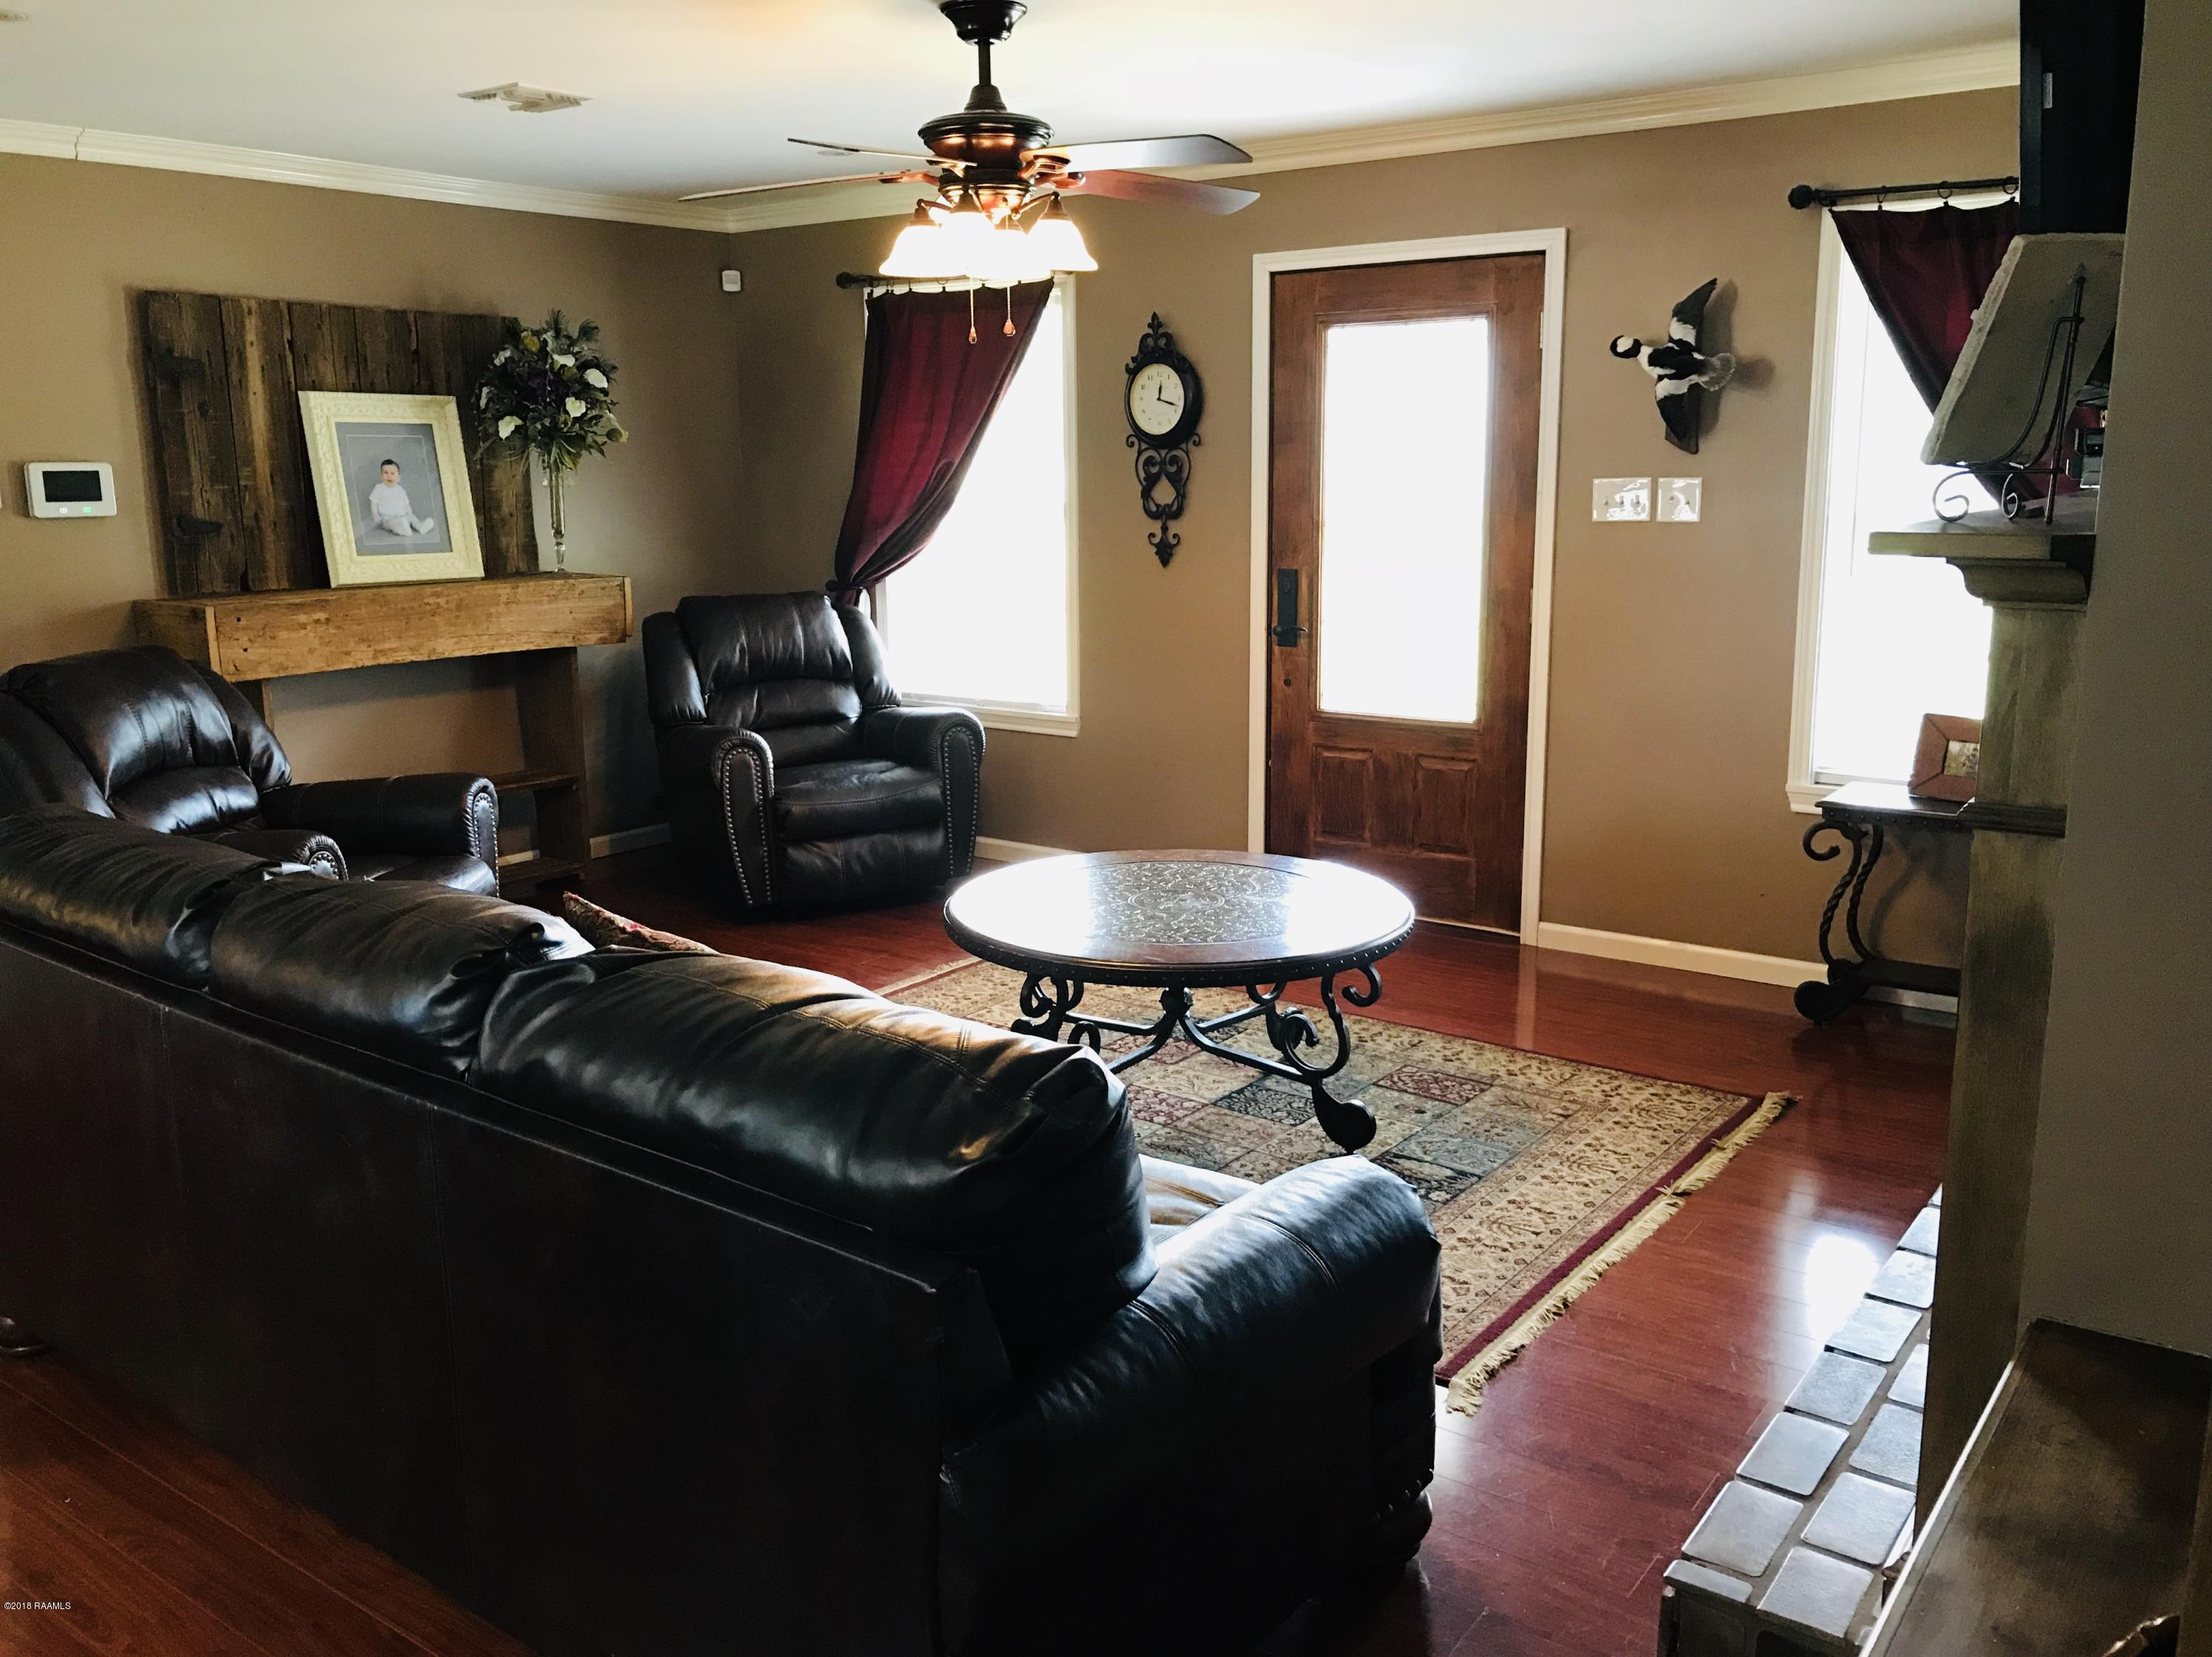 7188 Cossinade Road, Kaplan, LA 70548 Photo #12